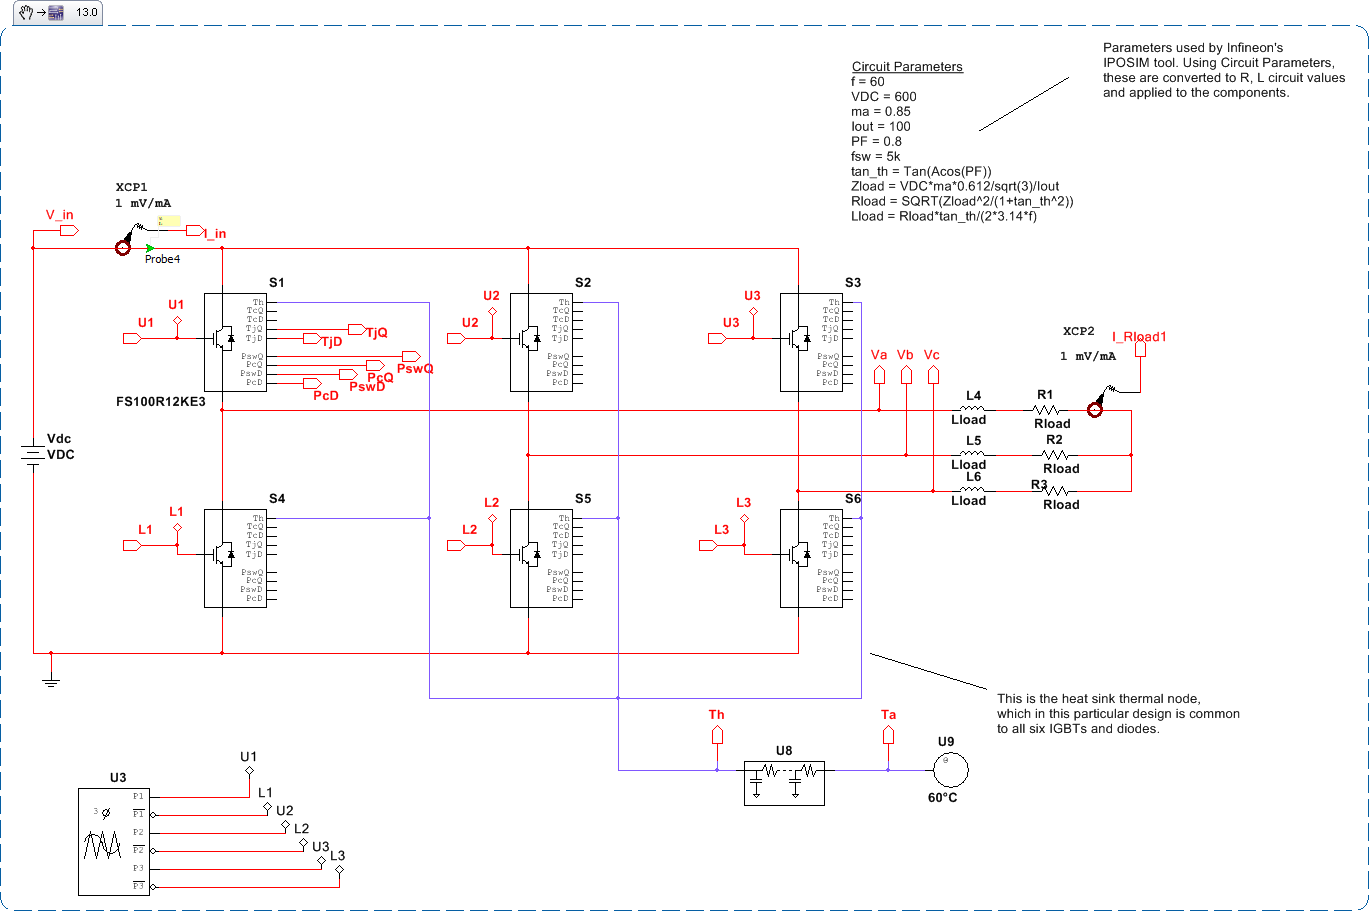 3 Phase Ups Block Diagram Wiring Library Electronic Circuit Inverter Design With Thermal Modeling And Switching Conduction Losses Power Electronics